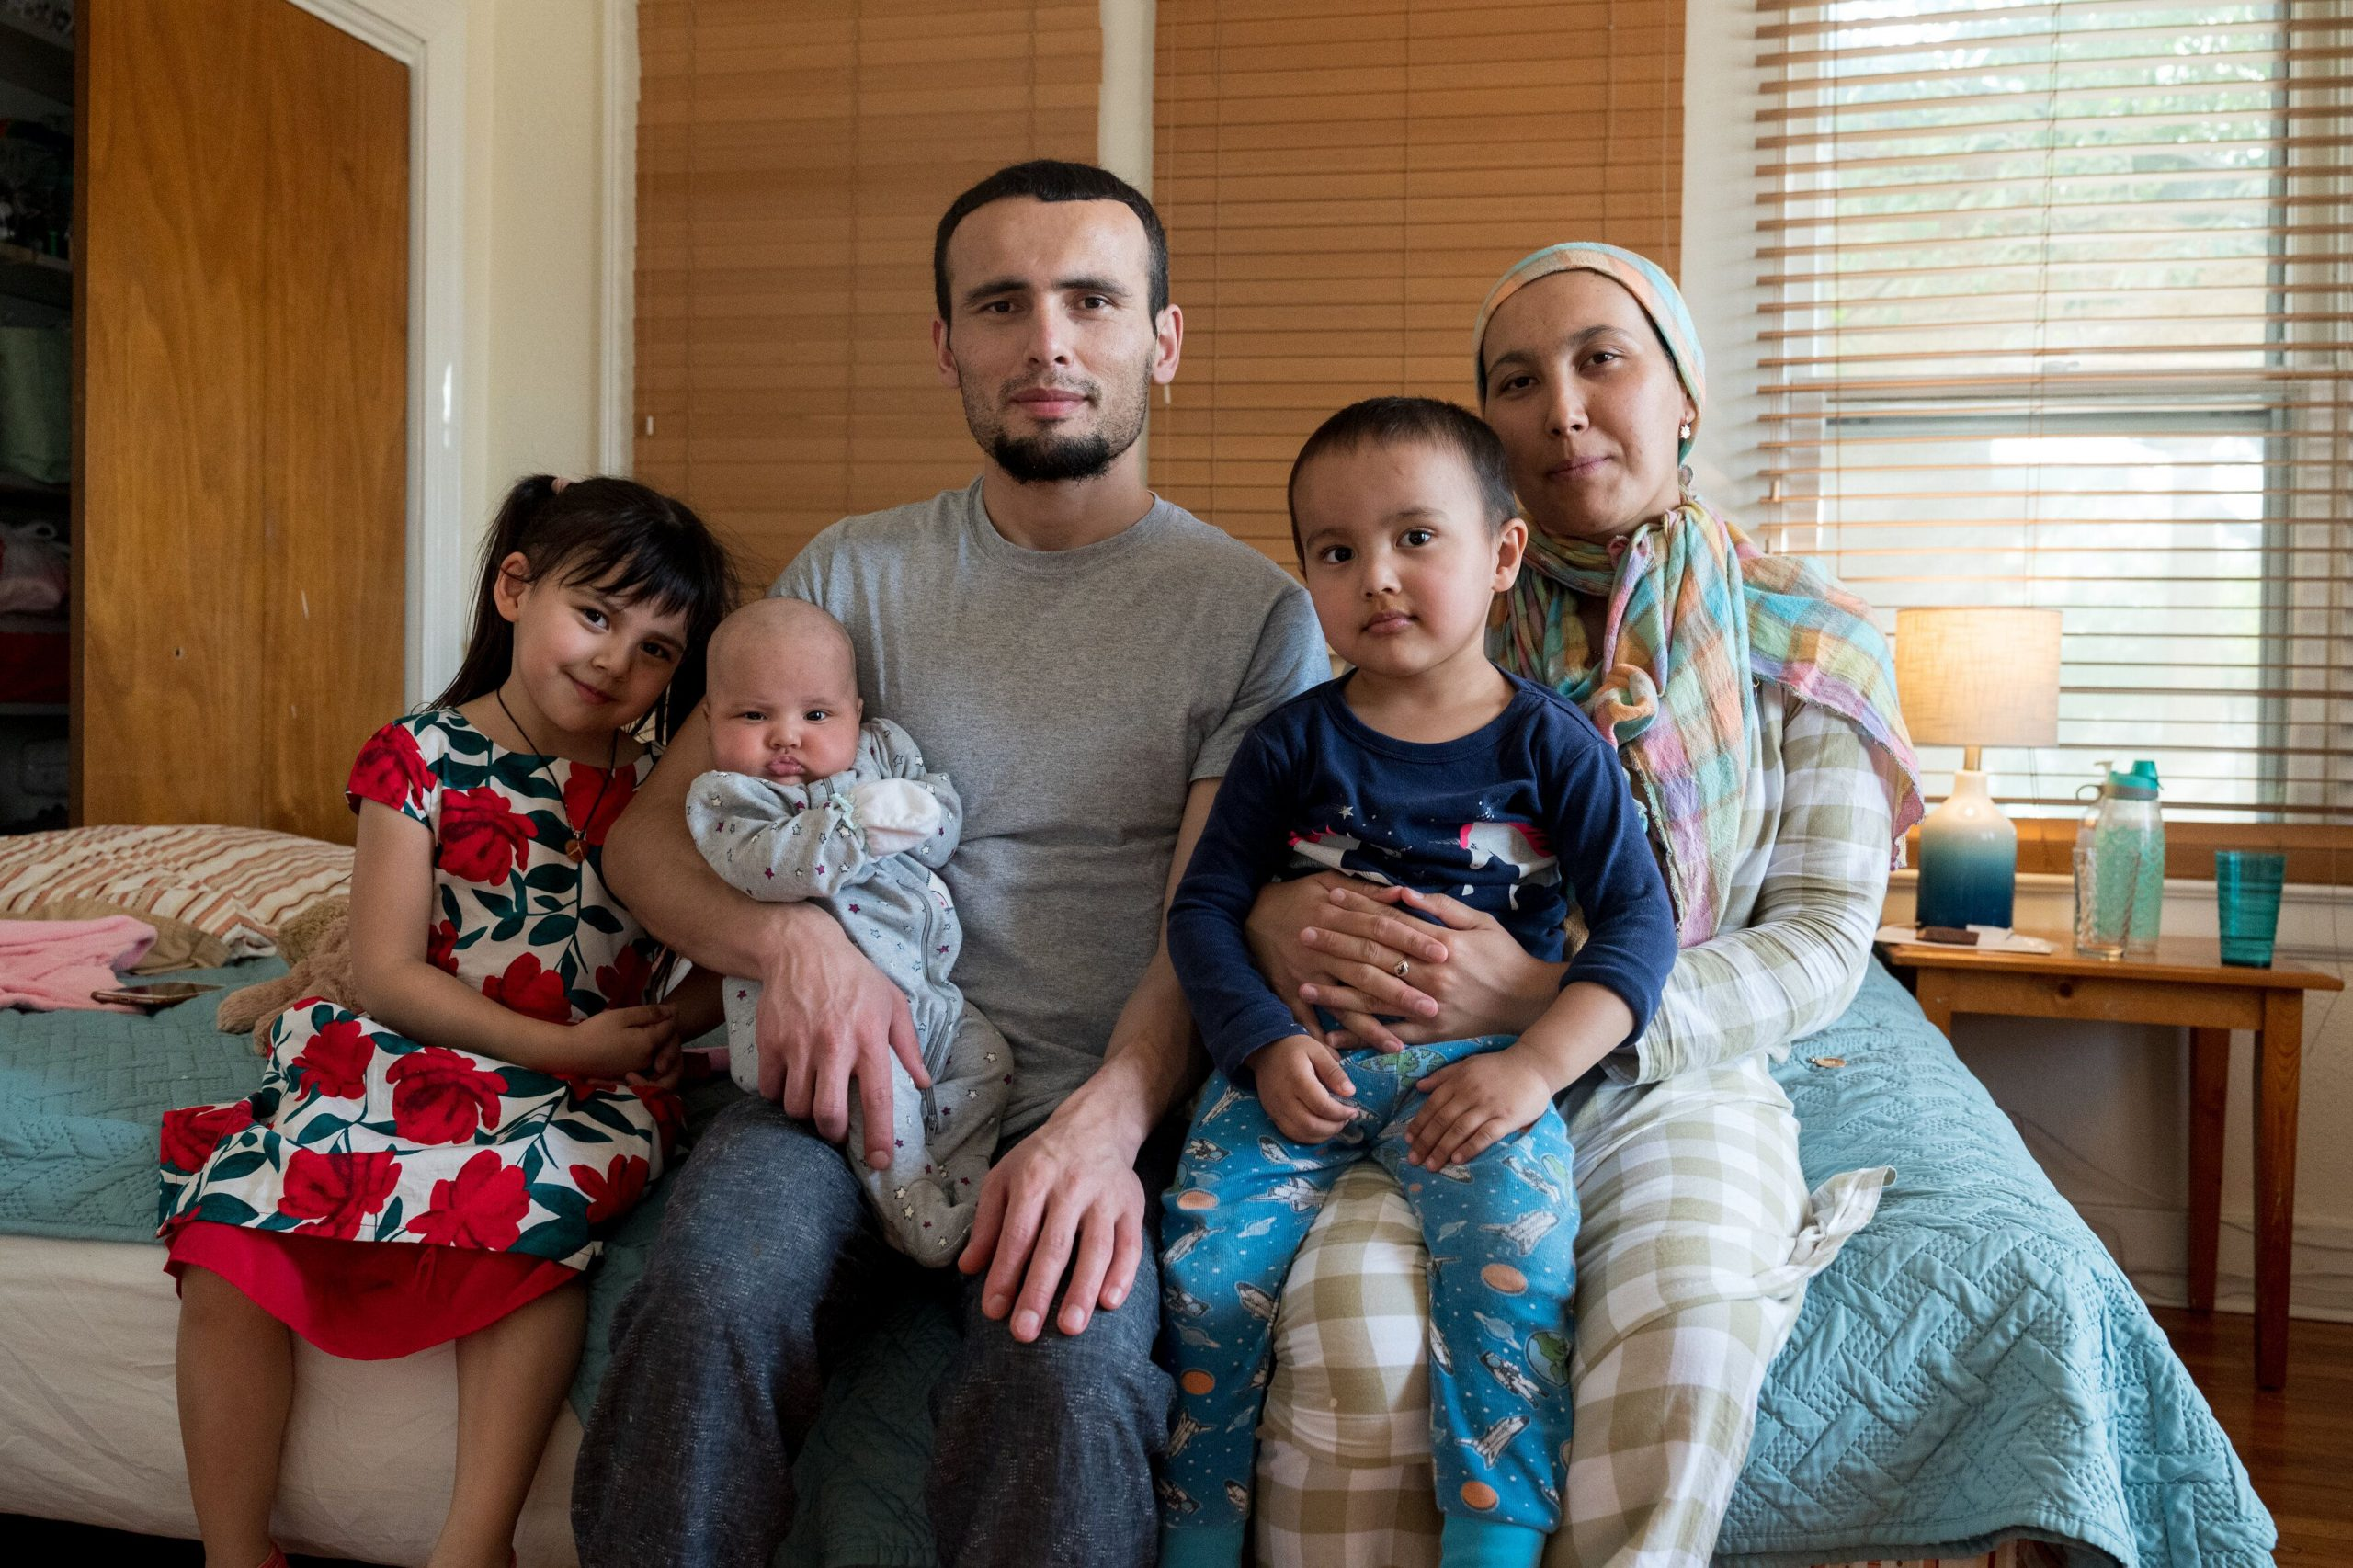 Muhammad spends time with his wife and three children at the San Antonio shelter.